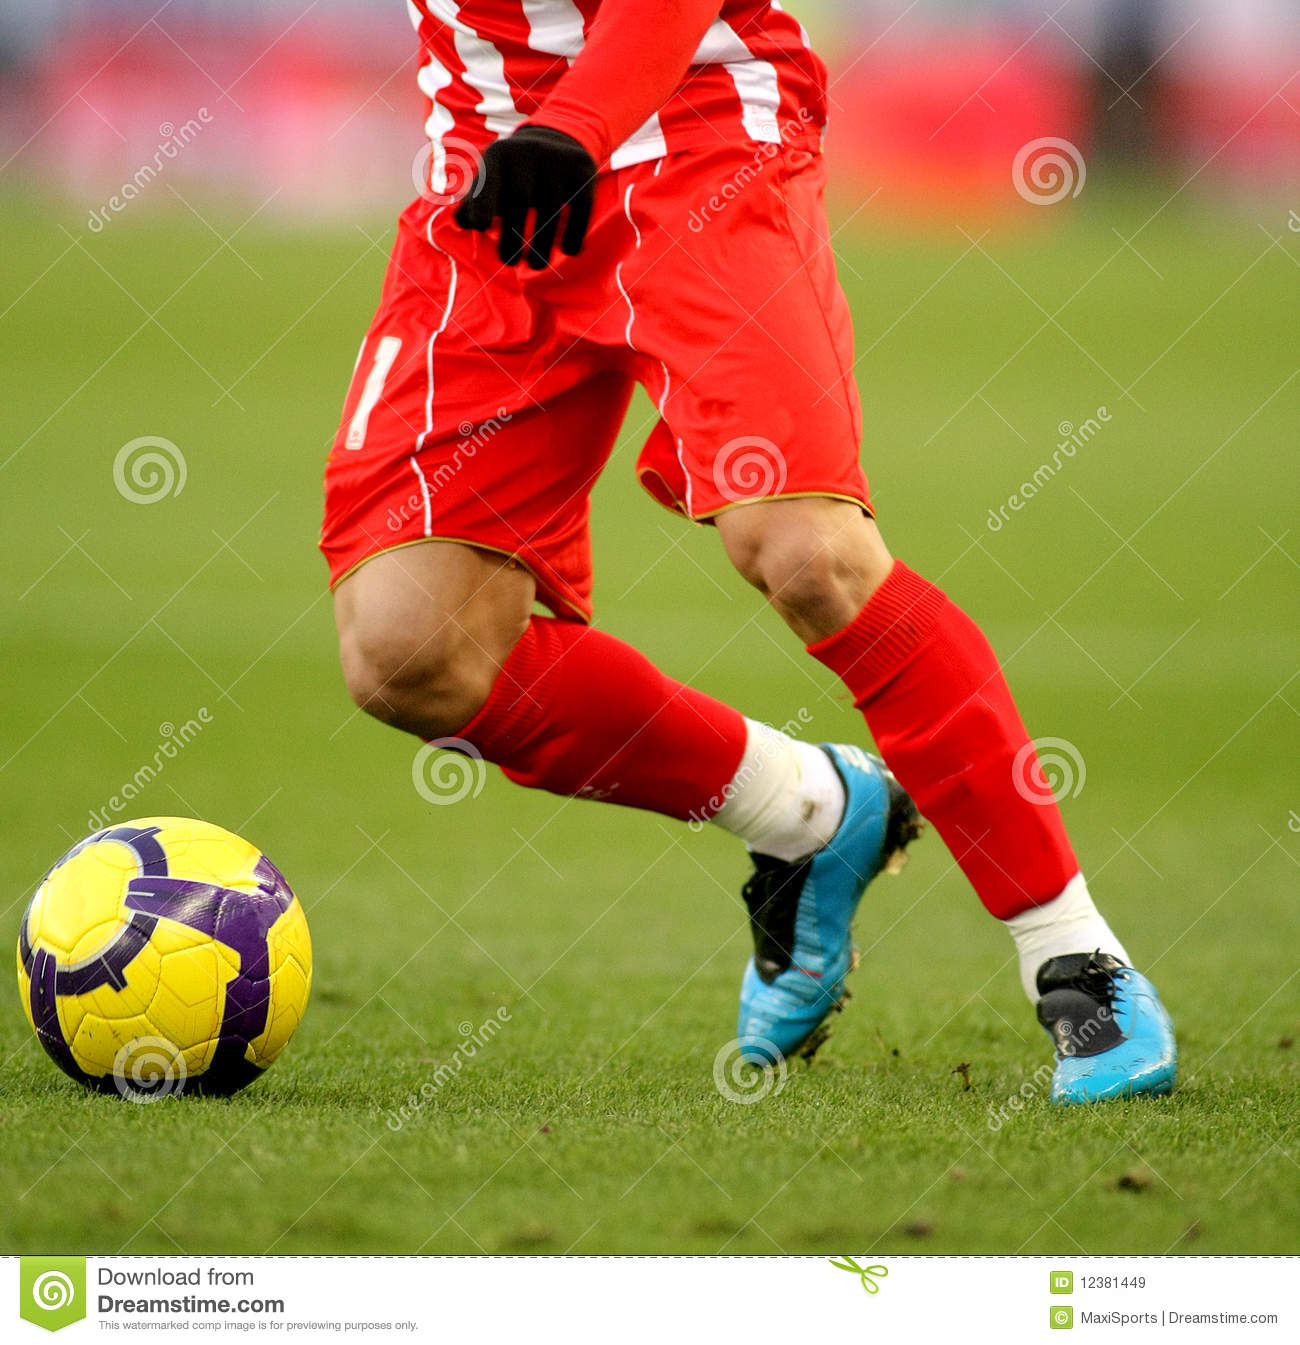 Soccer dribbling stock image. Image of athletic, emotion ...